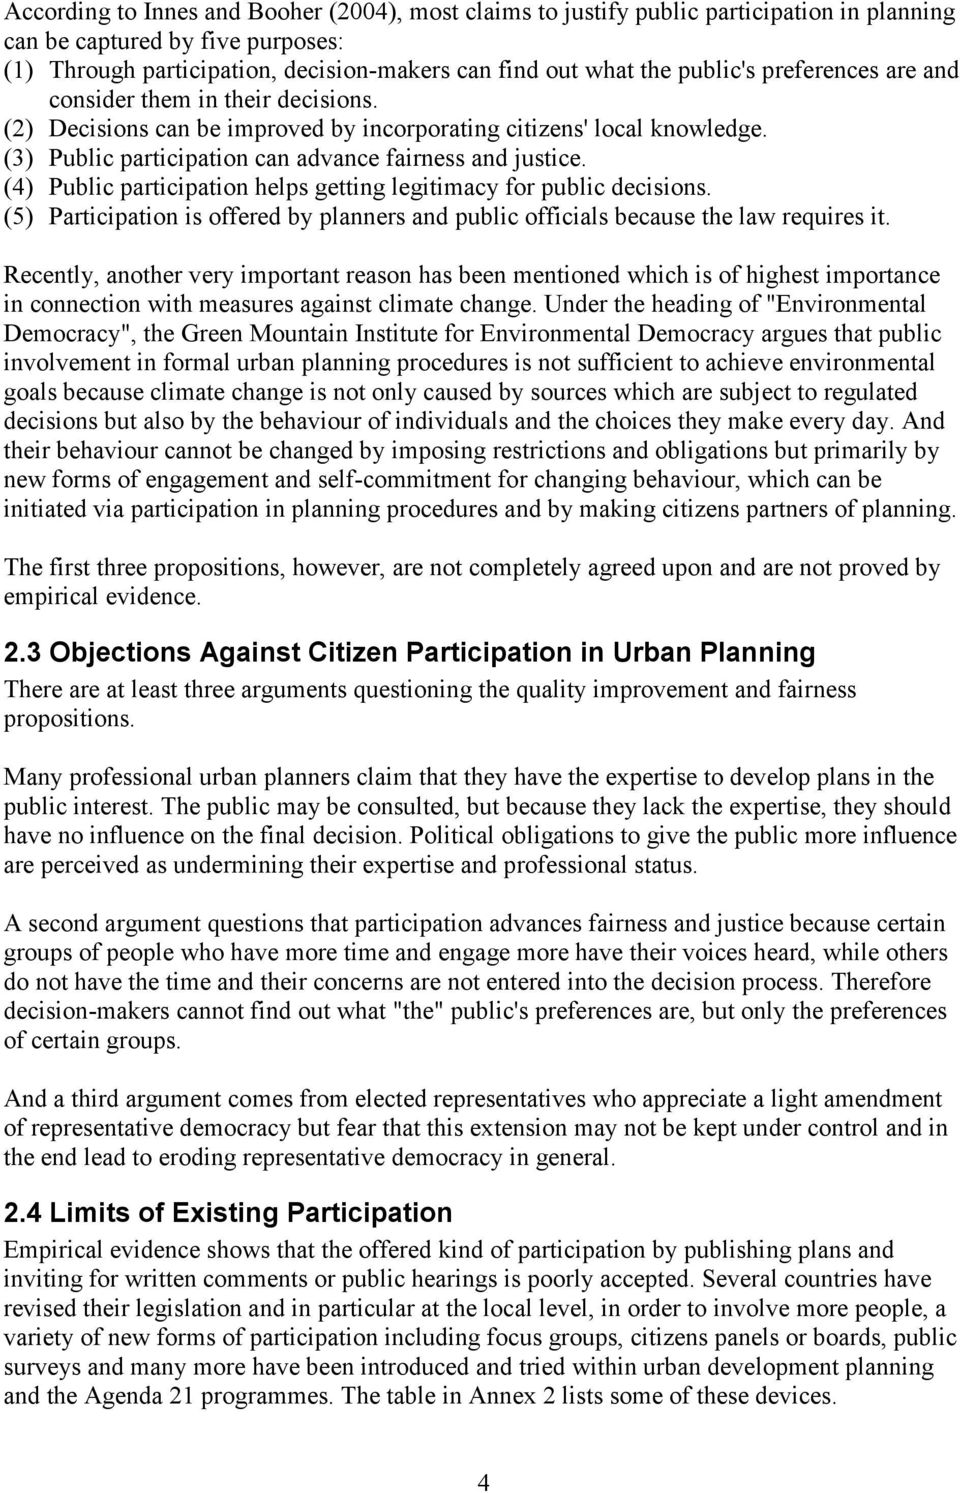 (4) Public participation helps getting legitimacy for public decisions. (5) Participation is offered by planners and public officials because the law requires it.